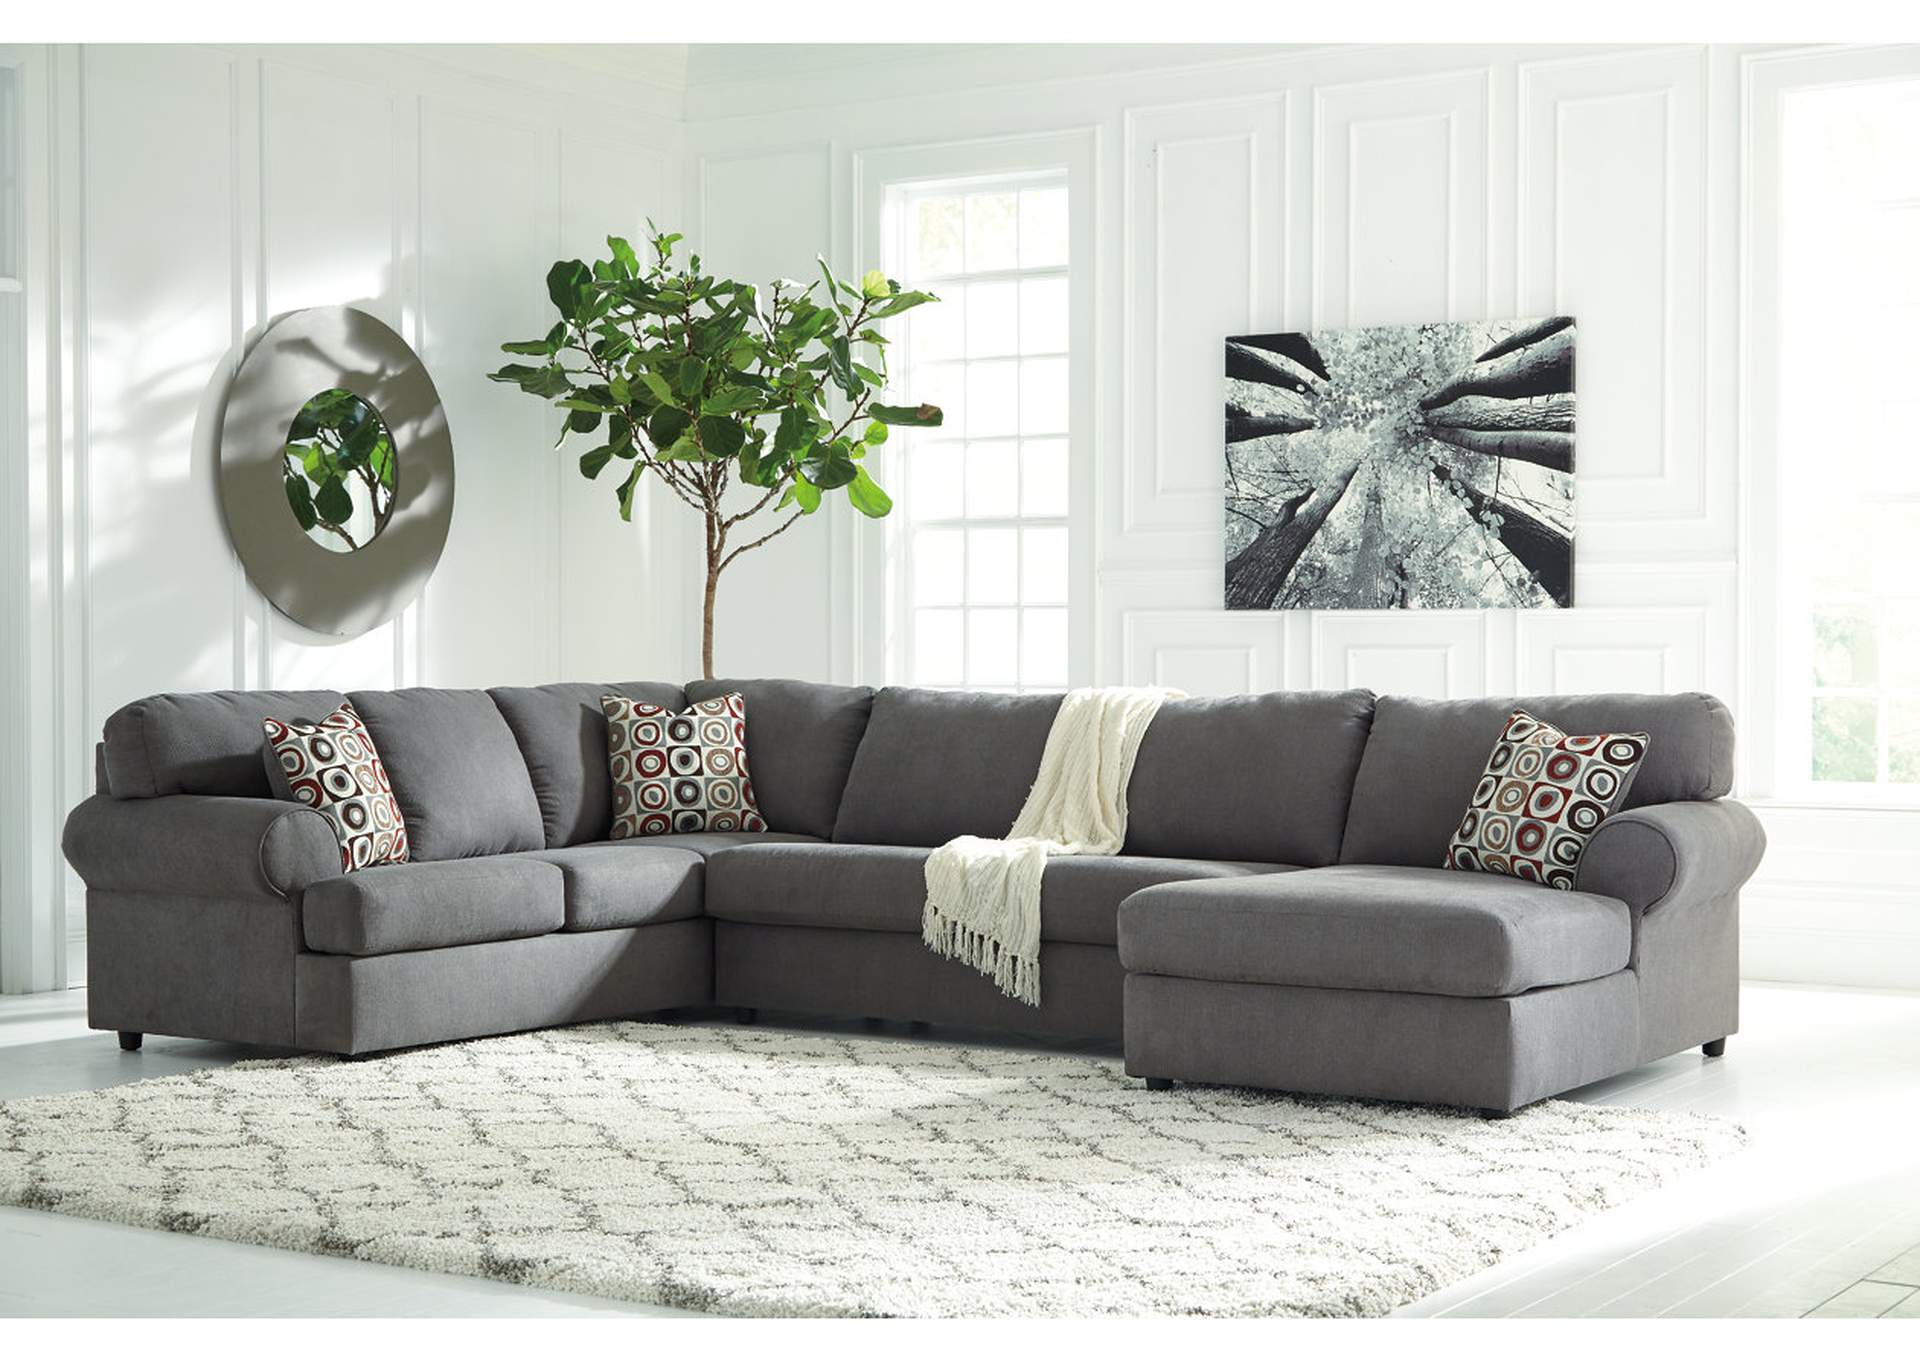 St germain 39 s furniture jayceon steel extended right for Albany st germain sectional sofa chaise